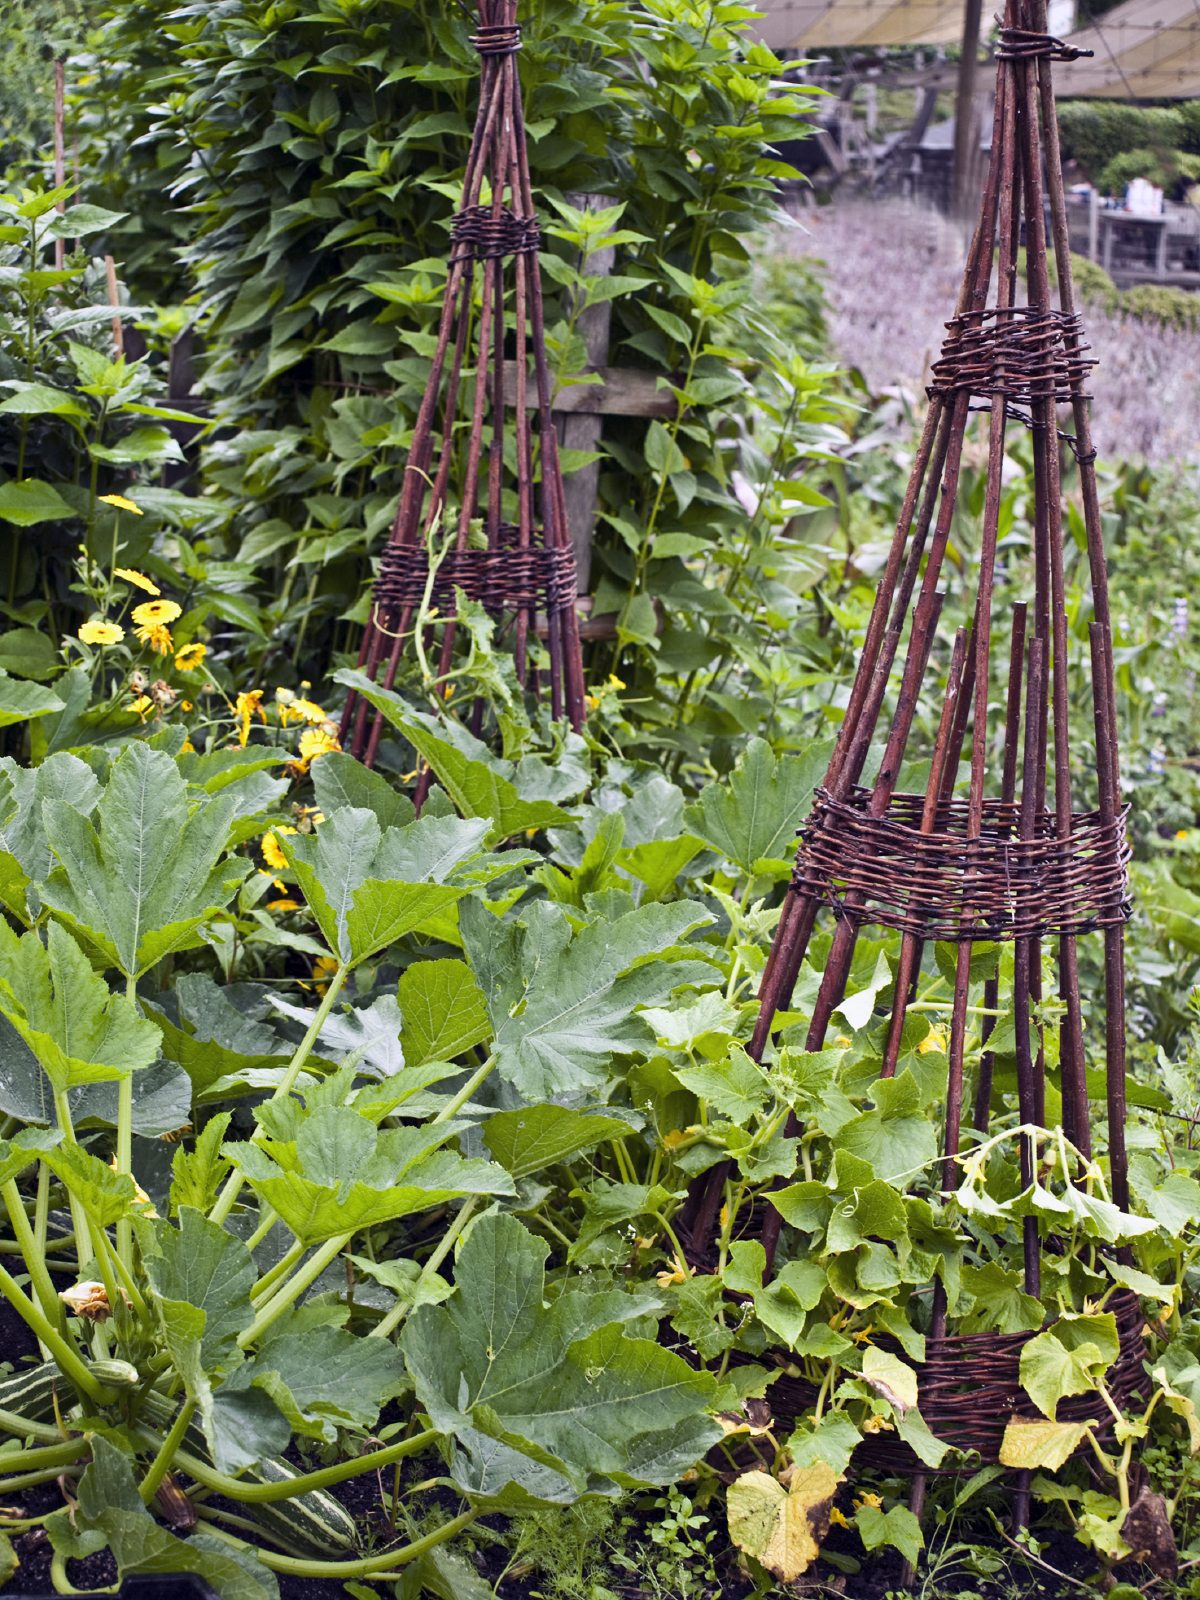 Companion Planting With Zucchini What Grows Well With